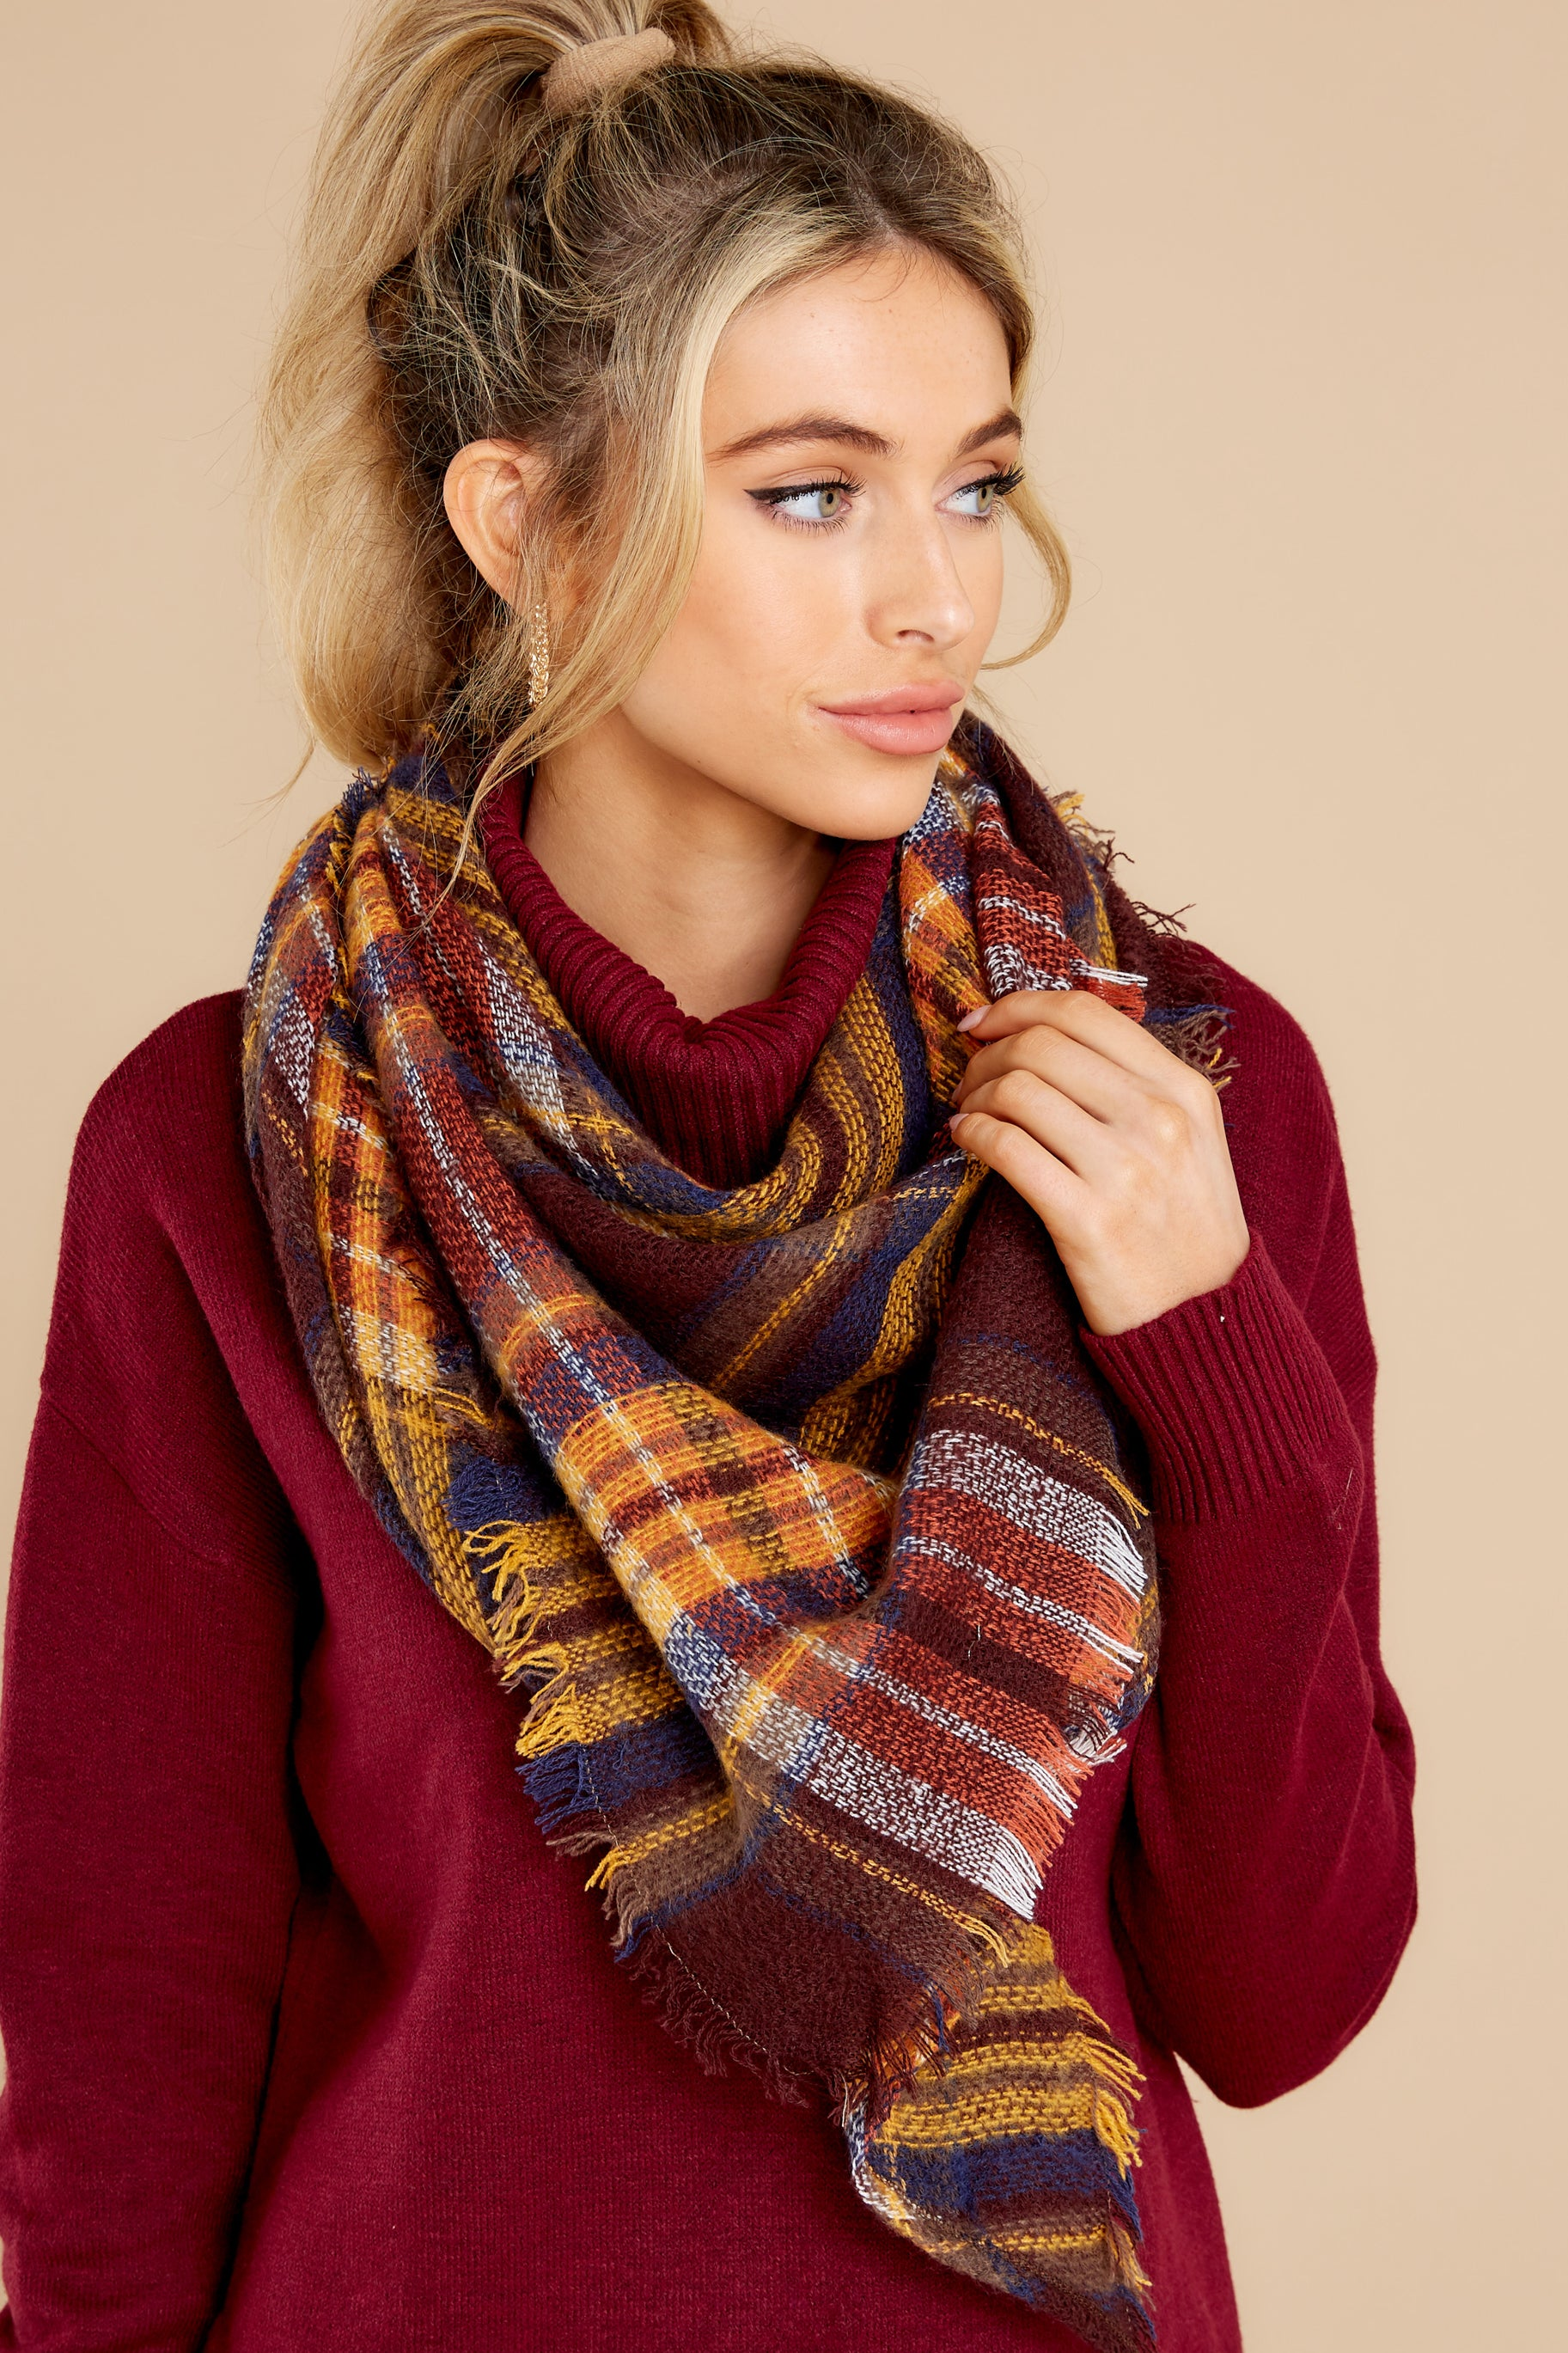 1 Chilled For The Day Maroon Brown Plaid Scarf at reddress.com